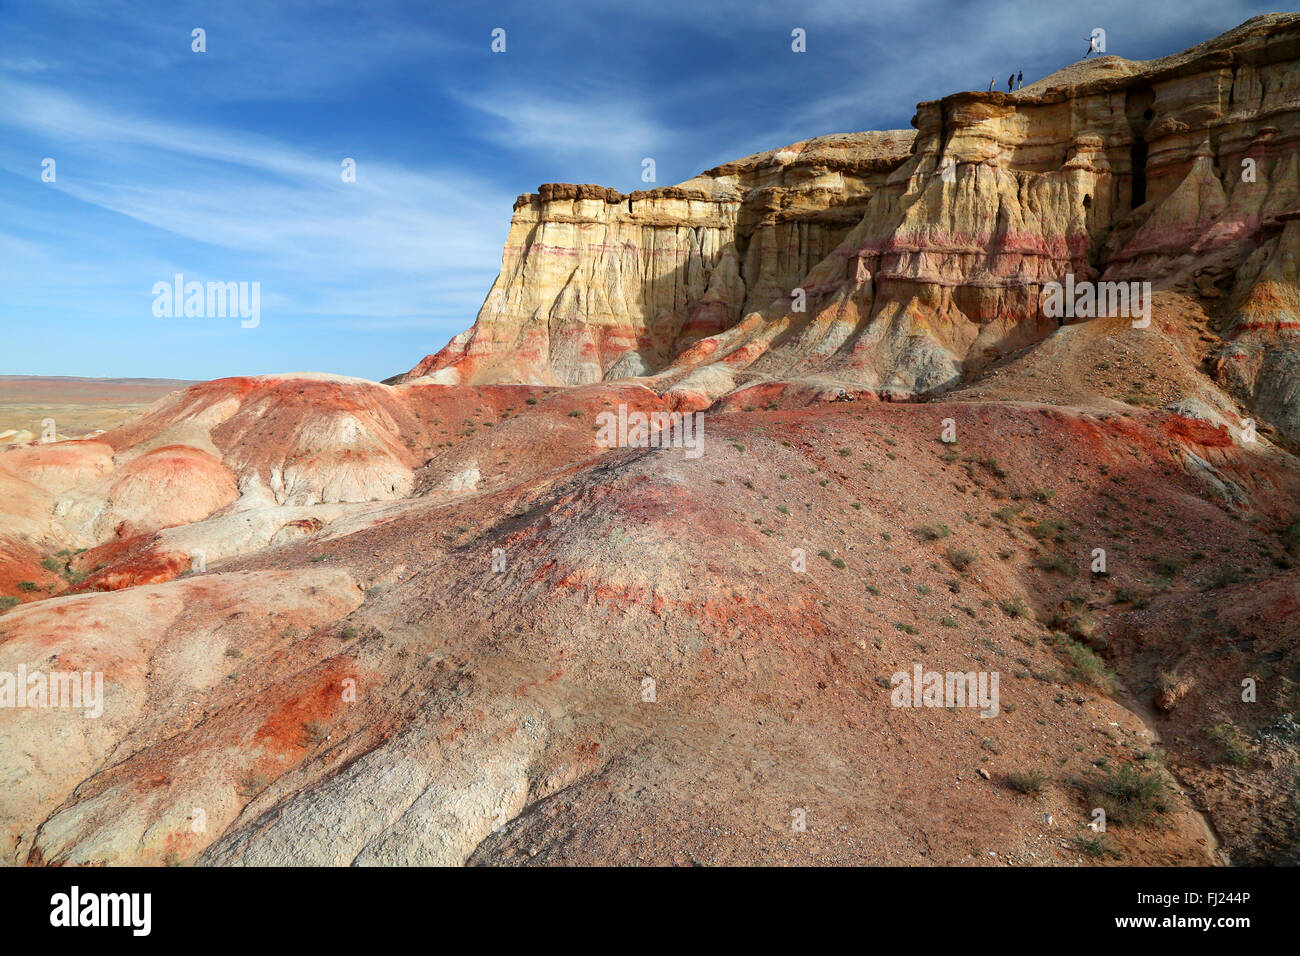 Tsagaan Suvarga - amazing landscape and place in Mongolia, located in the Southeast of the sum Ölziit on the - Stock Image